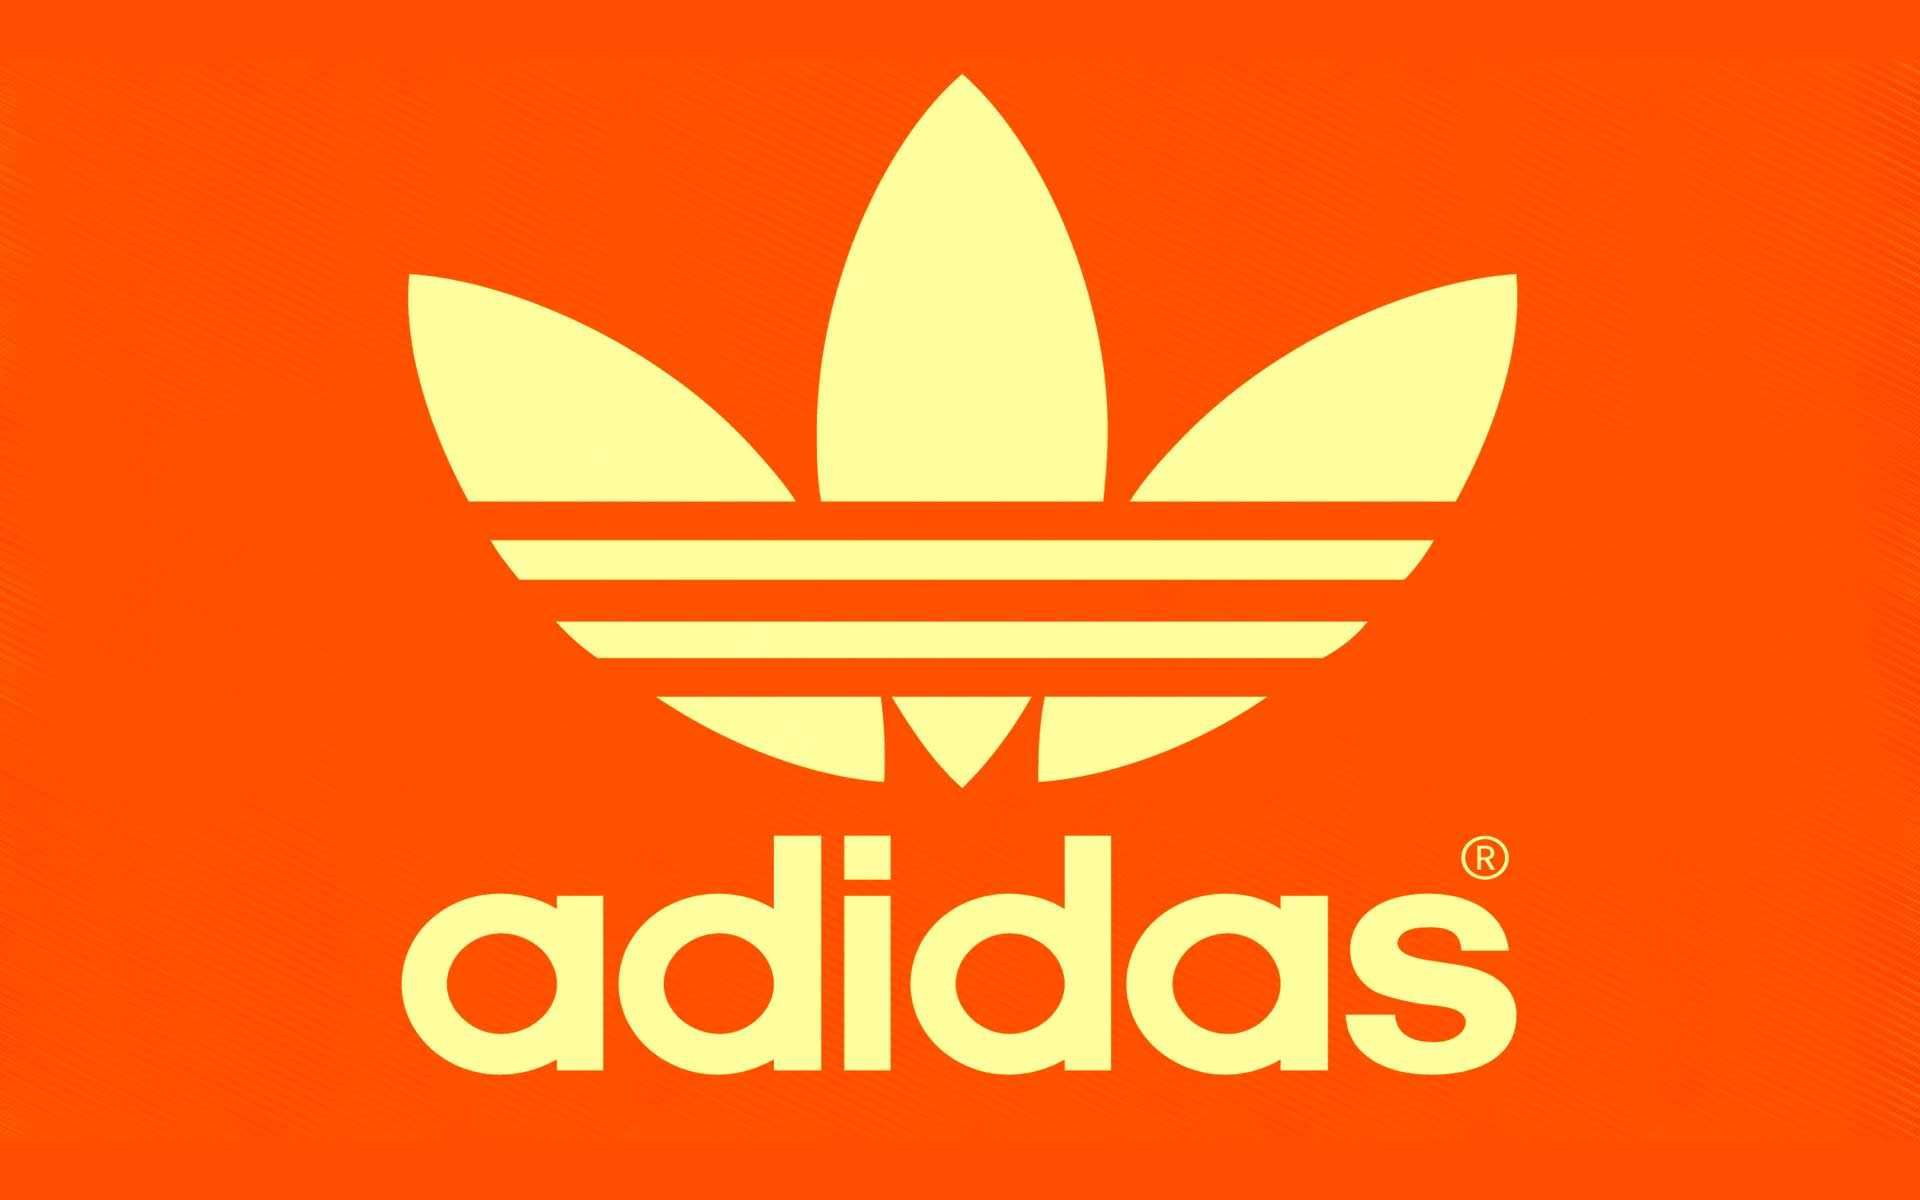 adidas logo hd download